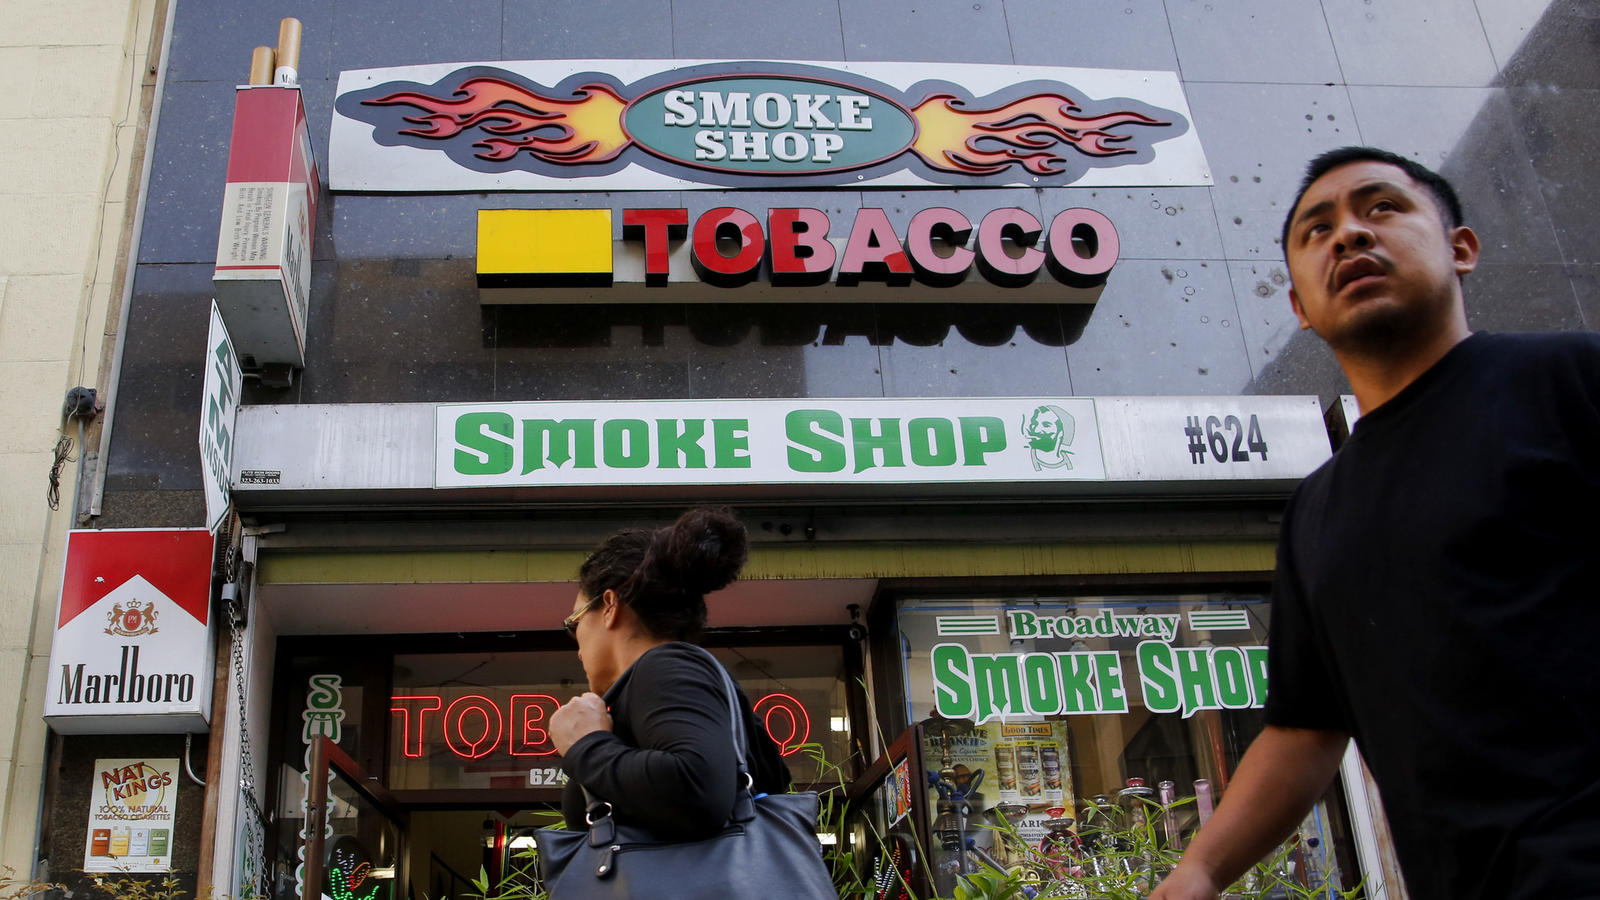 Pedestrians pass by a smoke shop on Broadway in downtown Los Angeles in 2014. (Los Angeles Times)